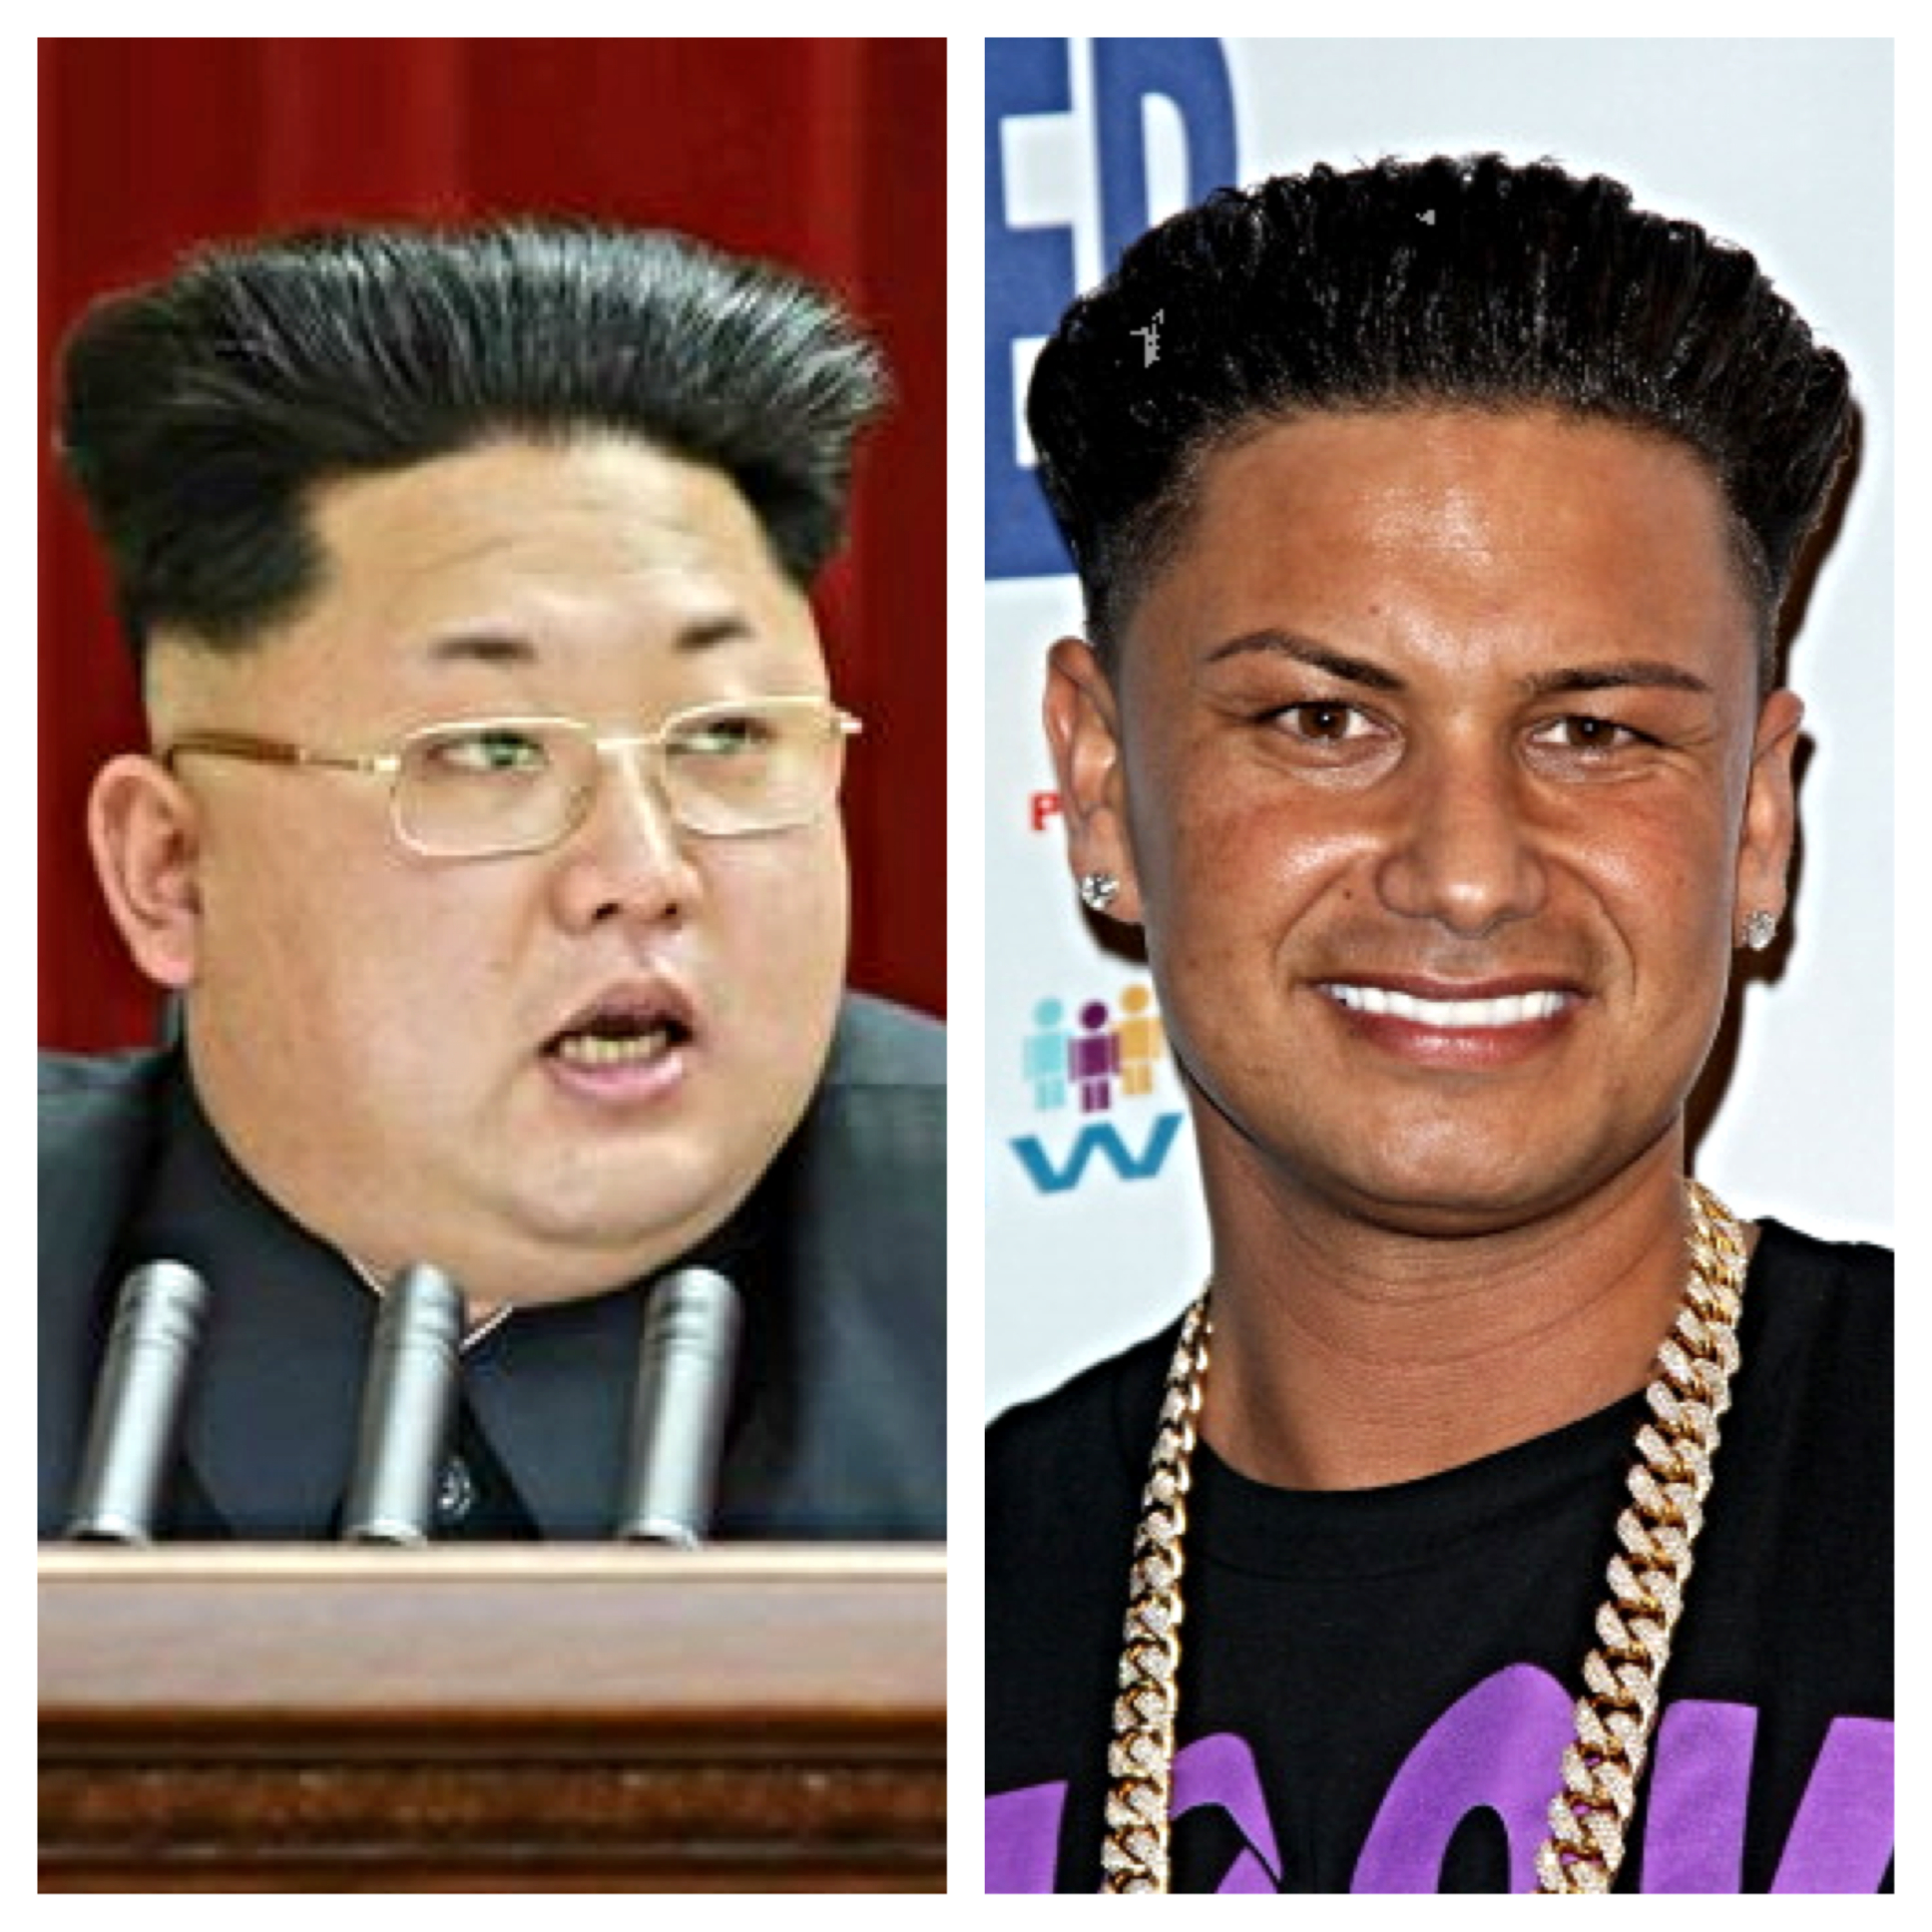 Kim jong uns new haircut gtl jlo the johnny lopez north korean supreme leader kim jong un debuted his brand new do and exquisitely manicured brows at a conference on wednesday which appeared to have been winobraniefo Images